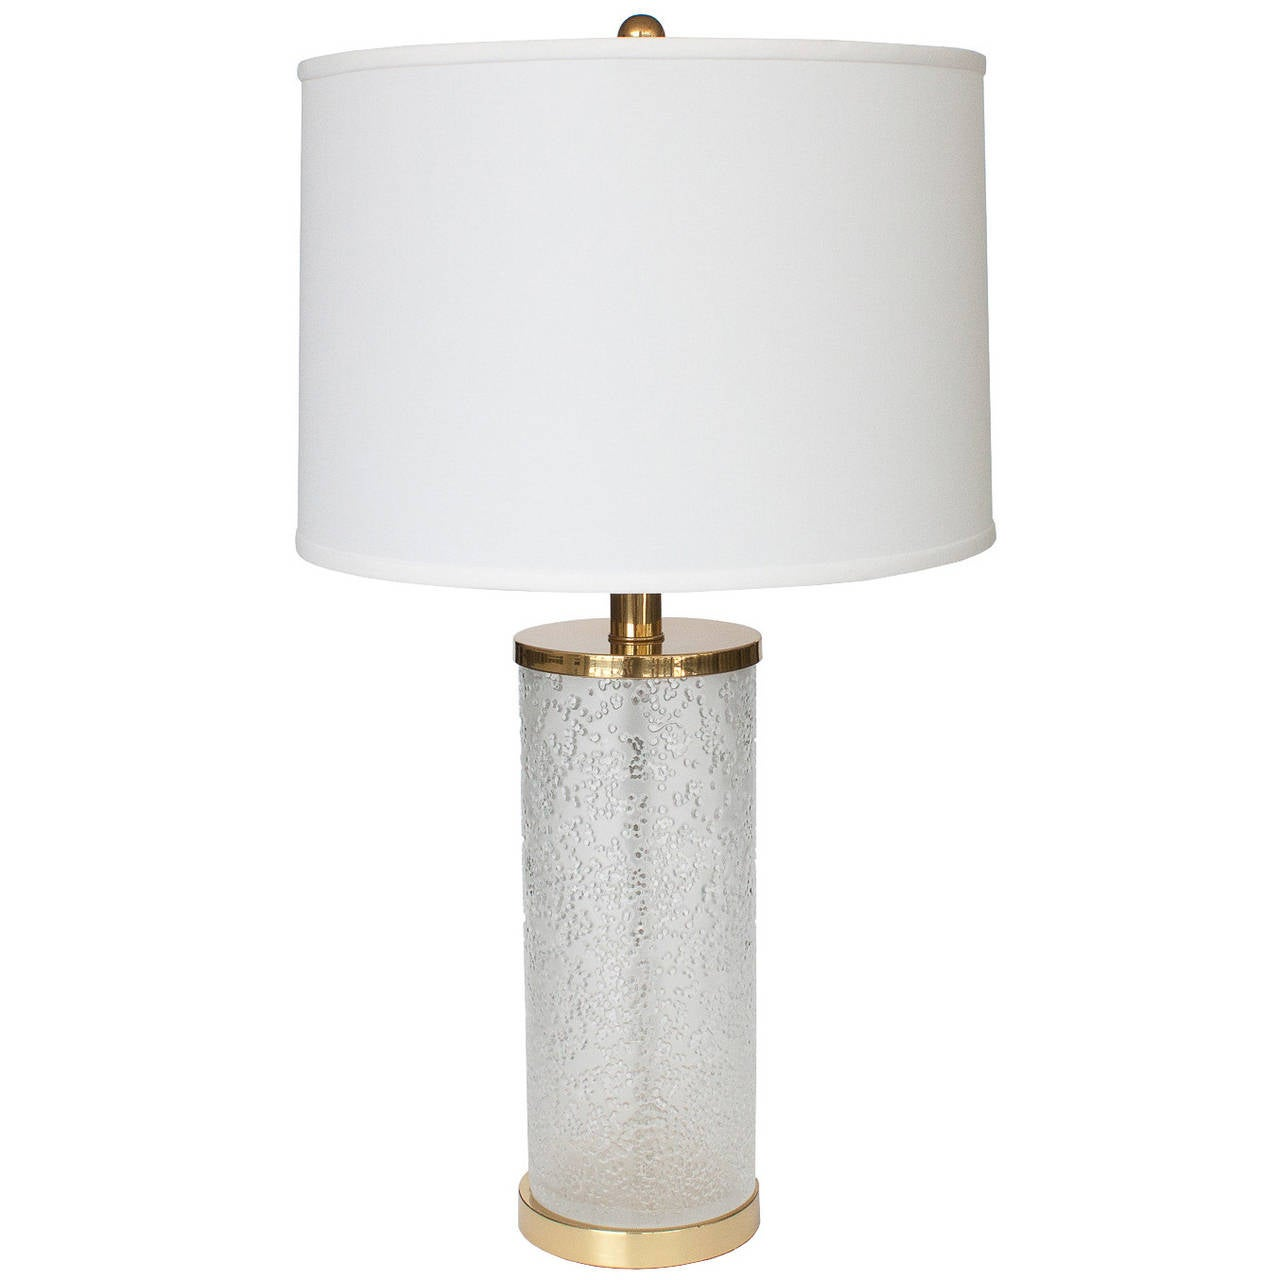 Paul Hanson Etched Glass Cylinder Brass Table Lamp For Sale